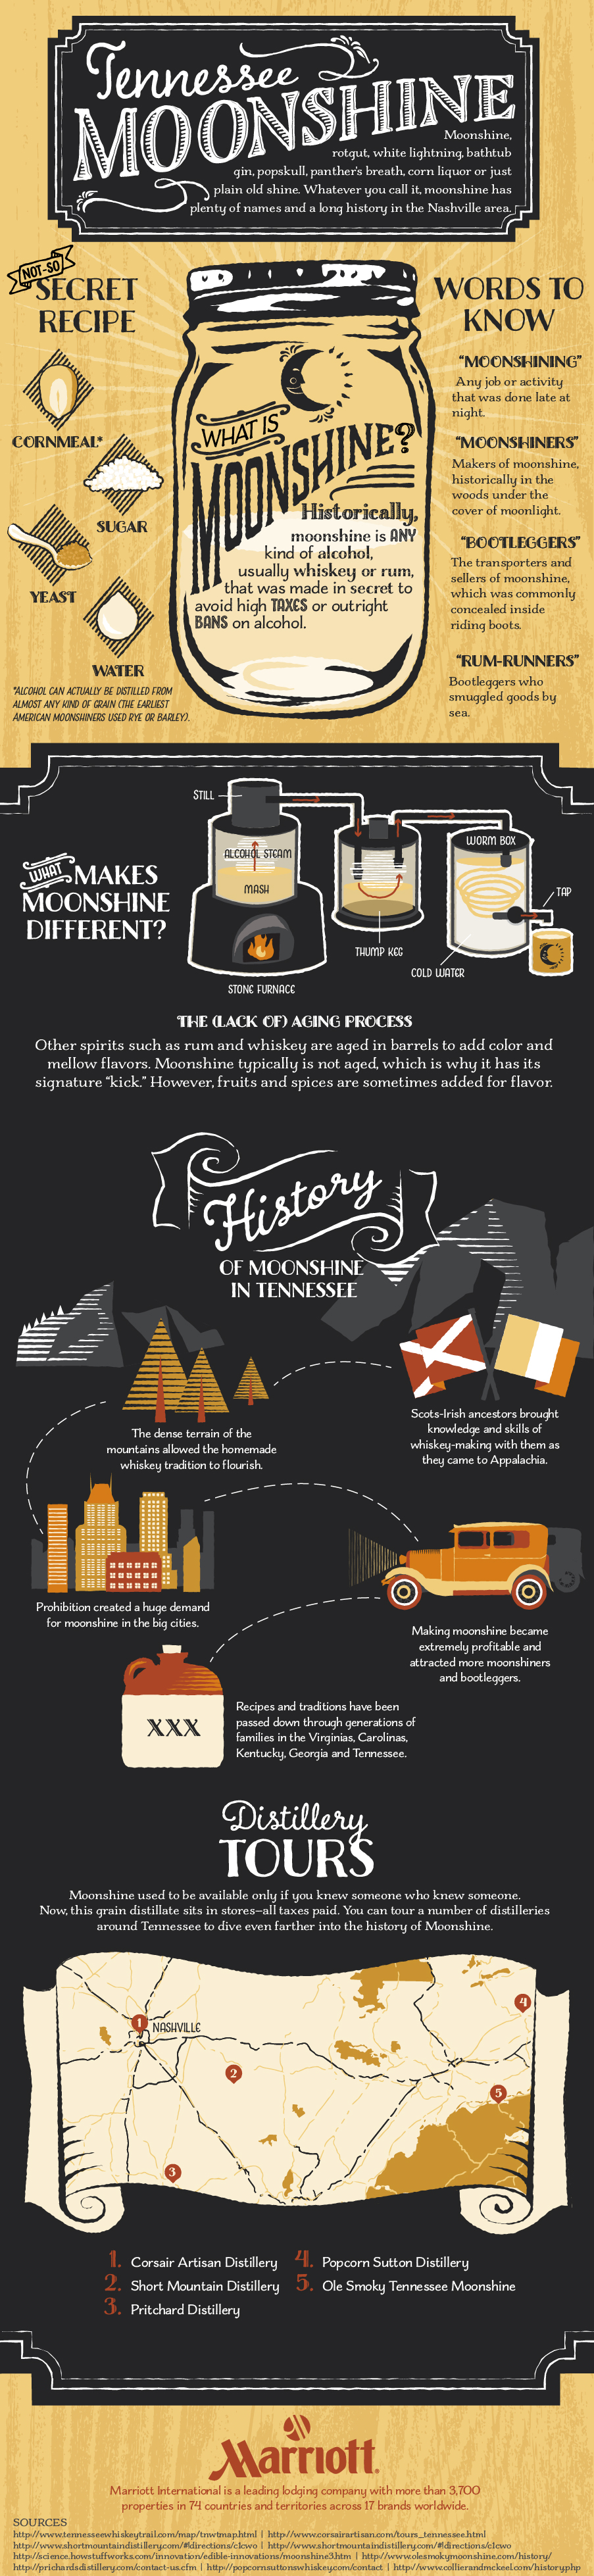 Tennessee Moonshine 101 | Best Food Infographics